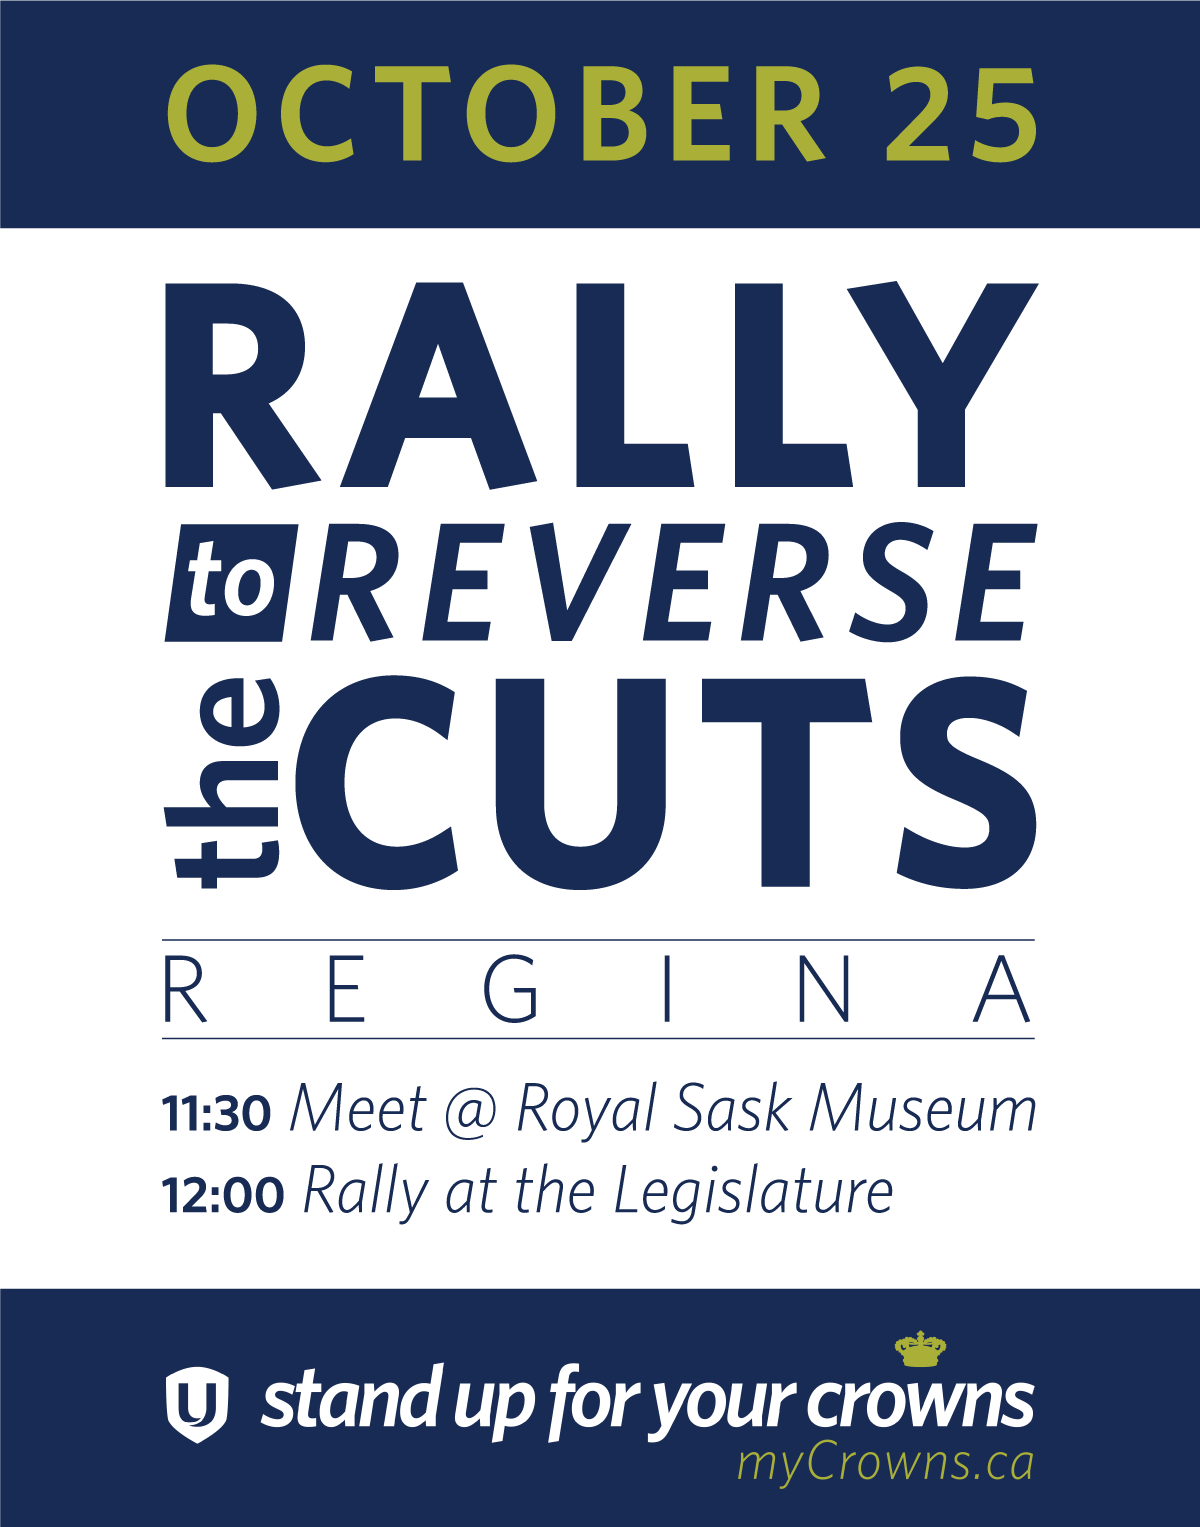 Crowns-Oct25-Rally-shareable-v3.png